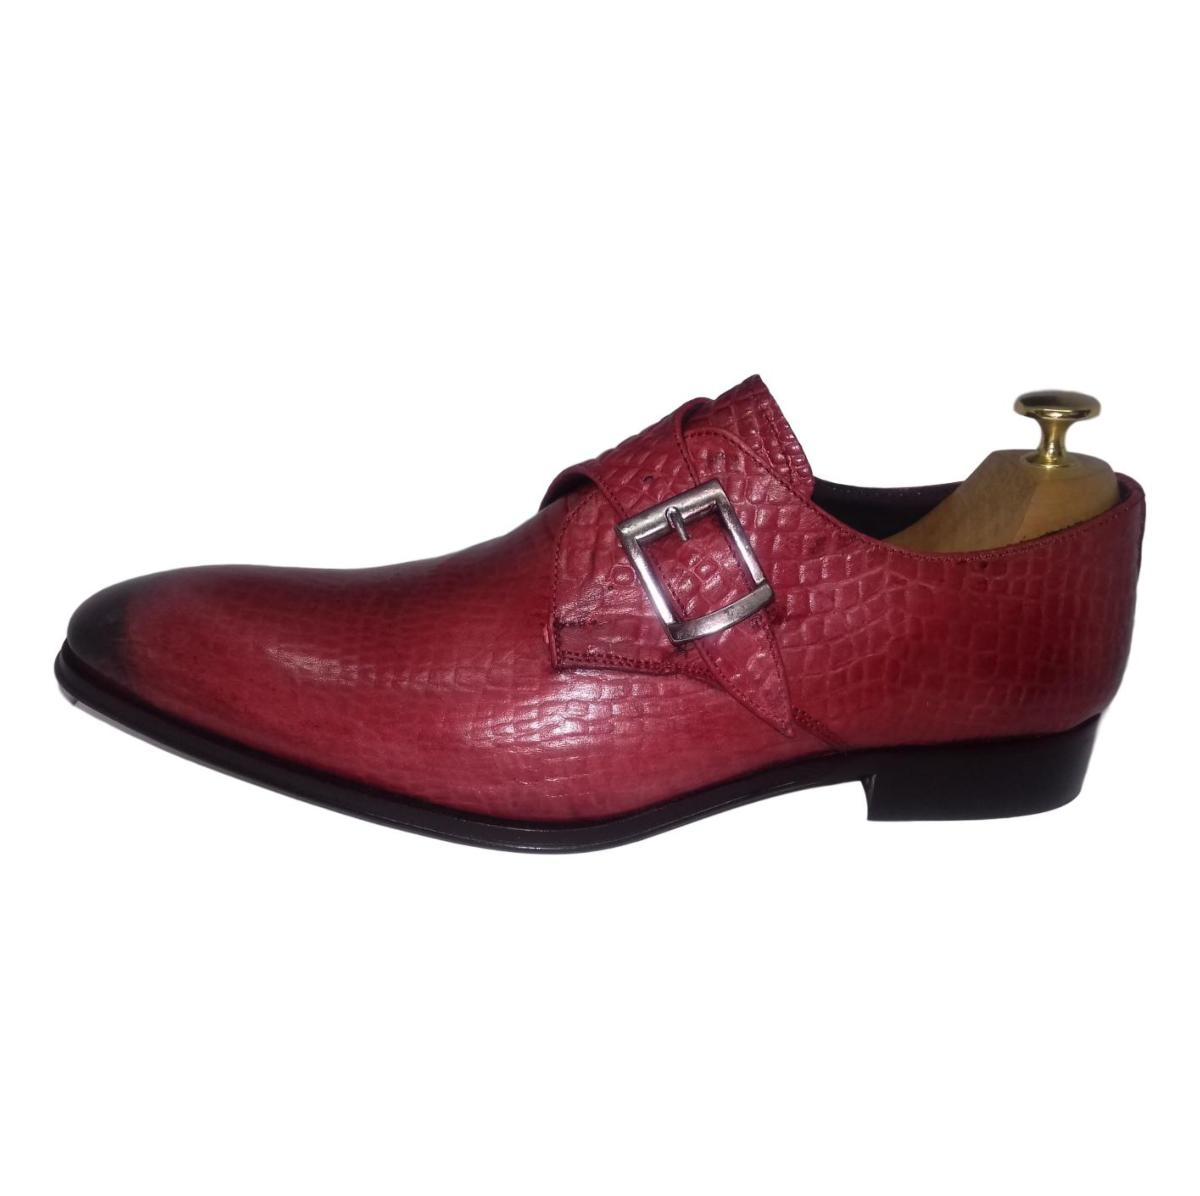 e1efdb5878129c Chaussure derby homme rouge - Prince croco ...